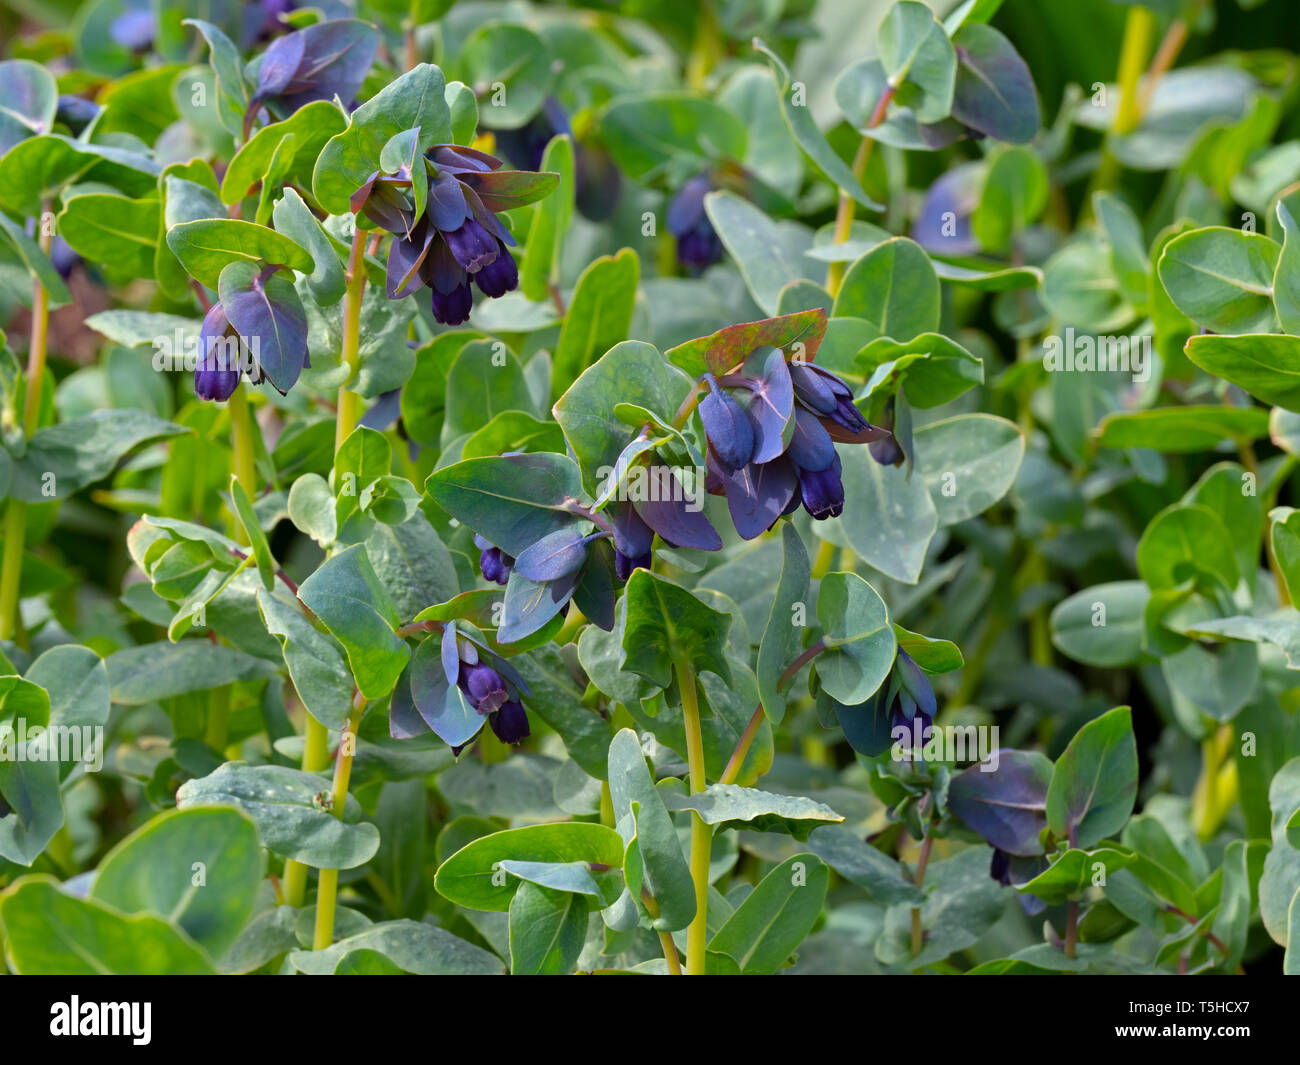 Honeywort Cerinthe major 'Purpurascens' - Stock Image